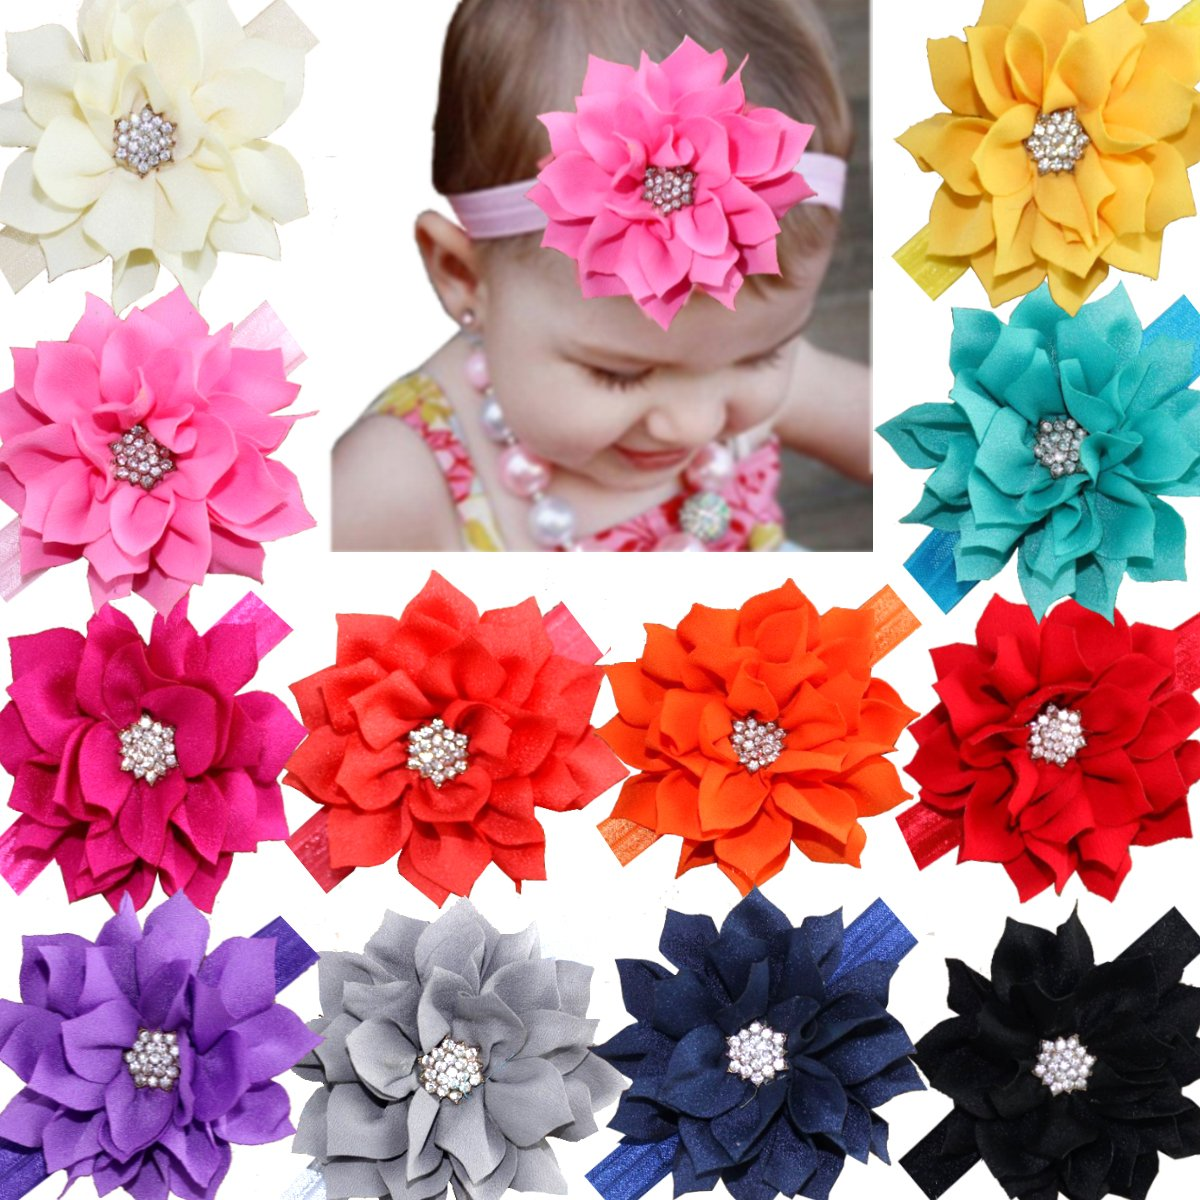 About the product Material fabric material flower with sparkly rhinestone c829f95e7e65